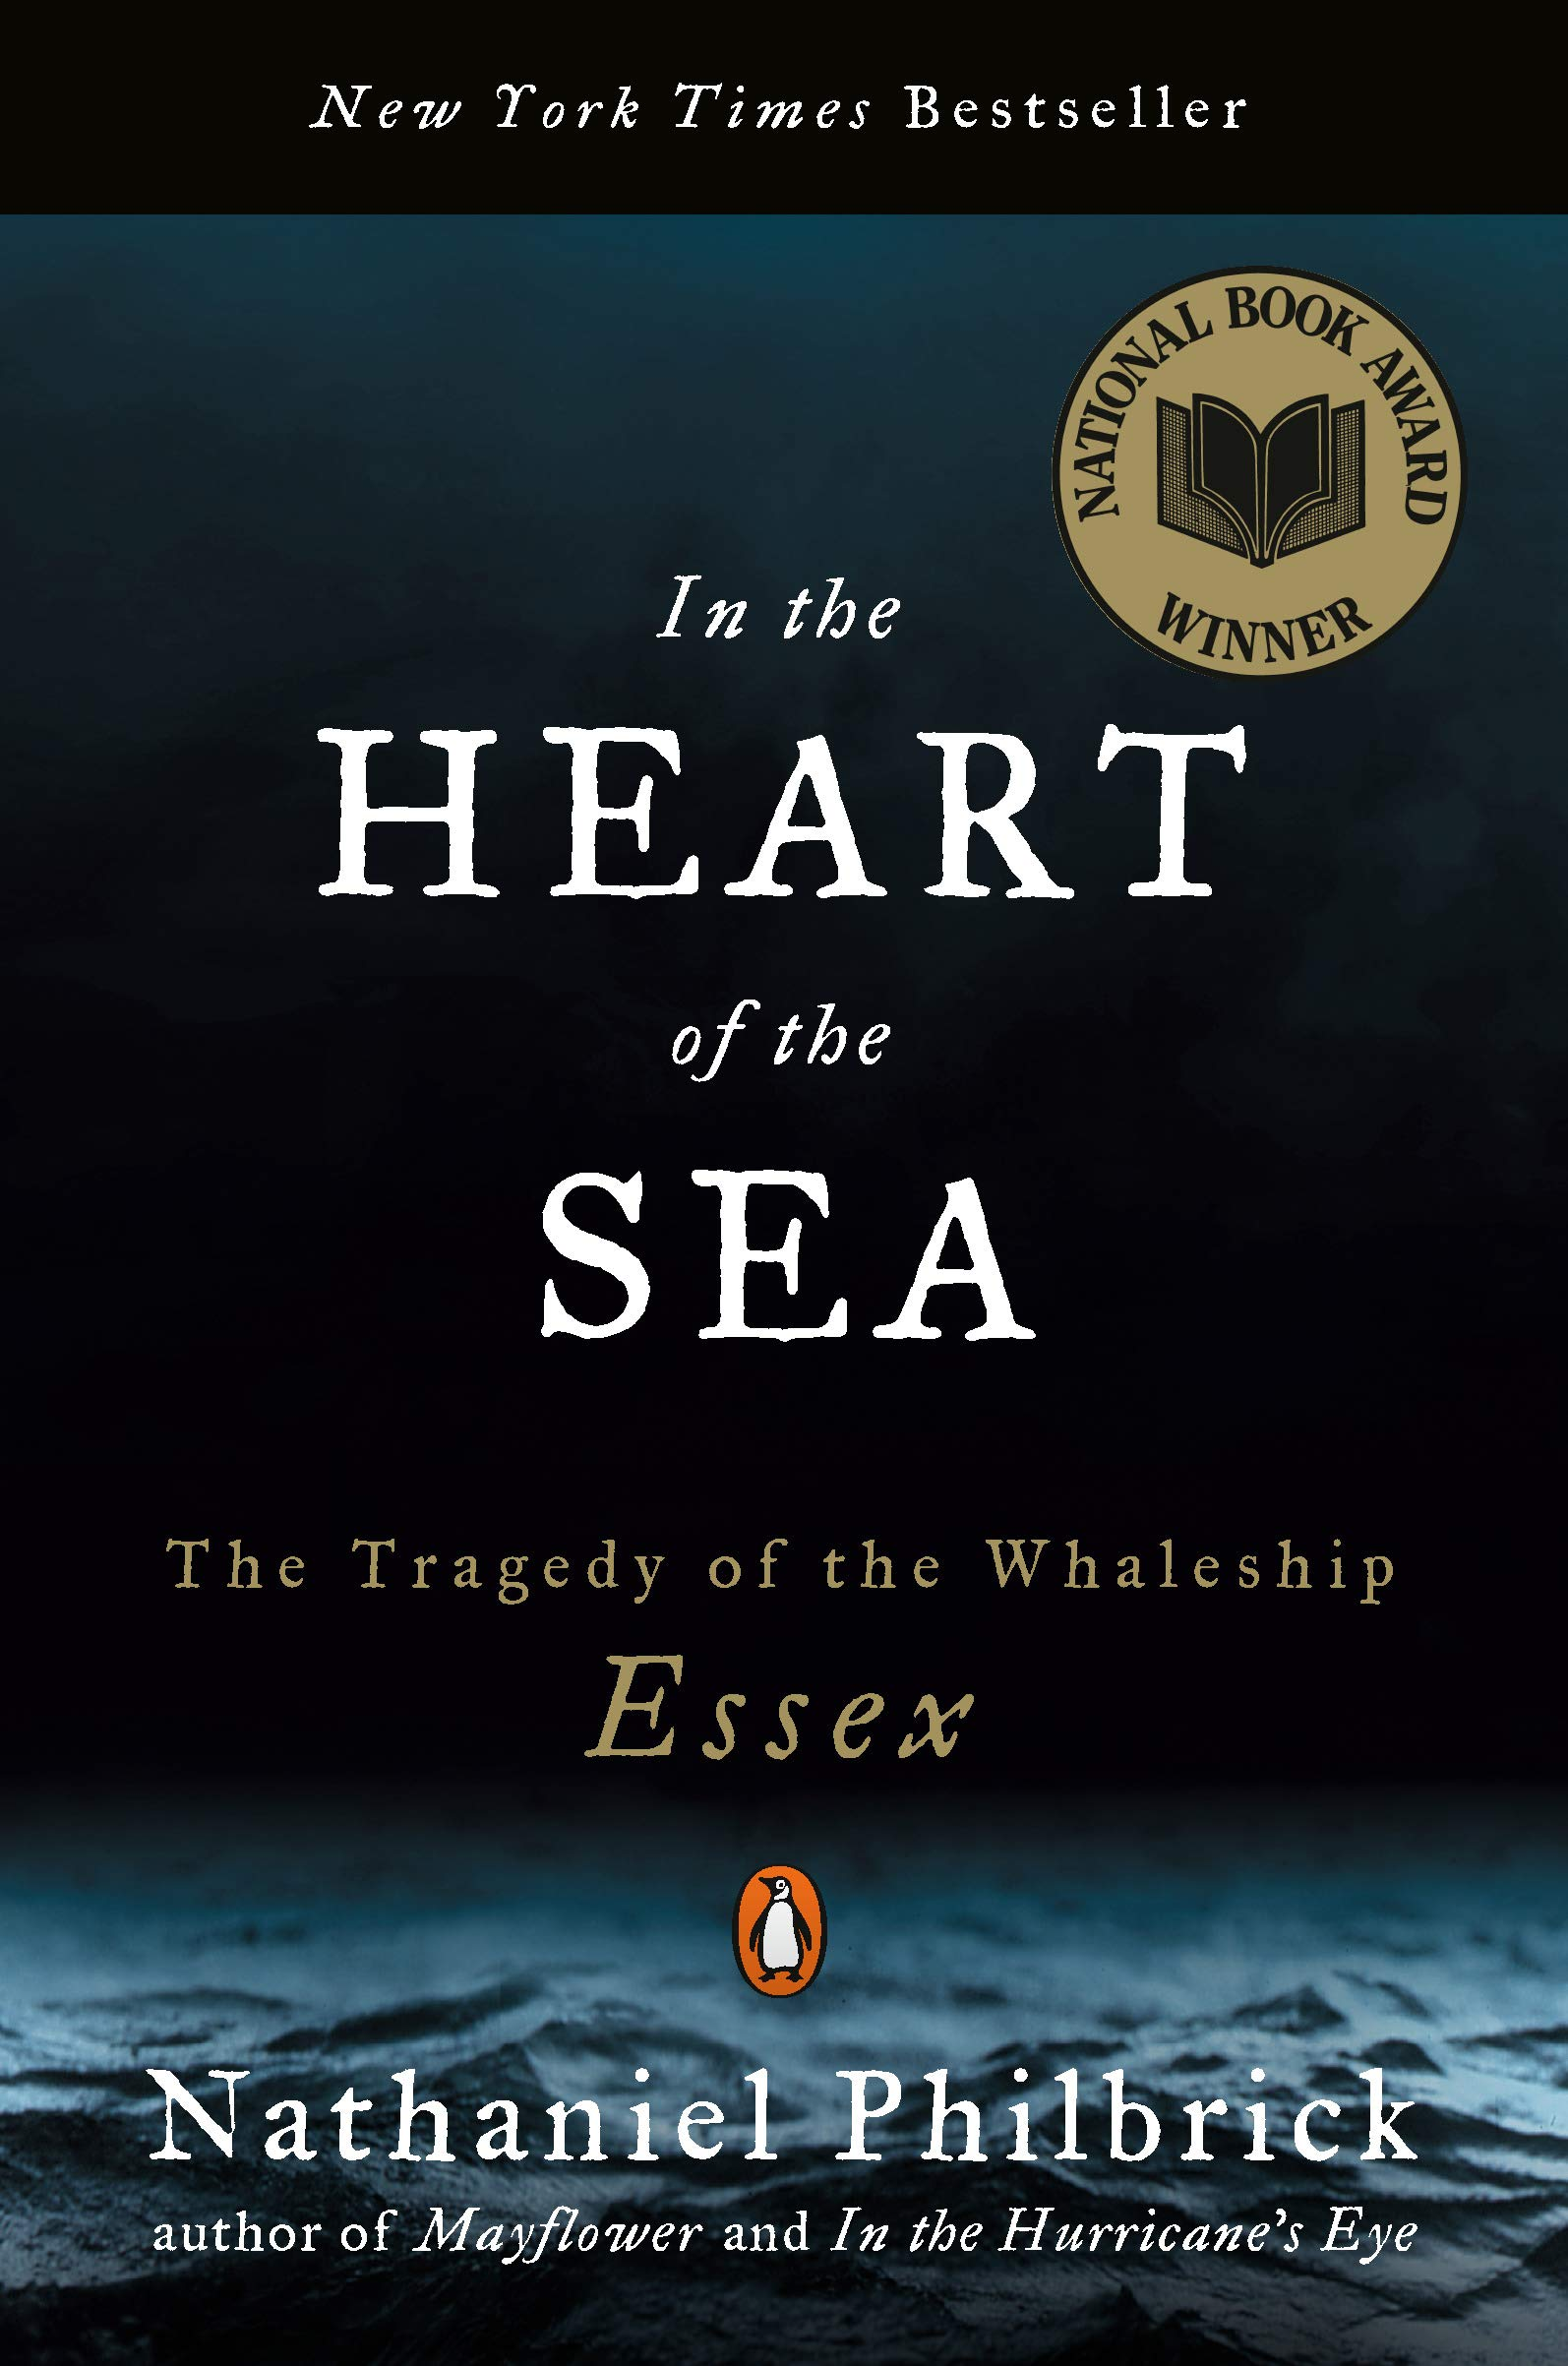 Portrait of In the Heart of the Sea